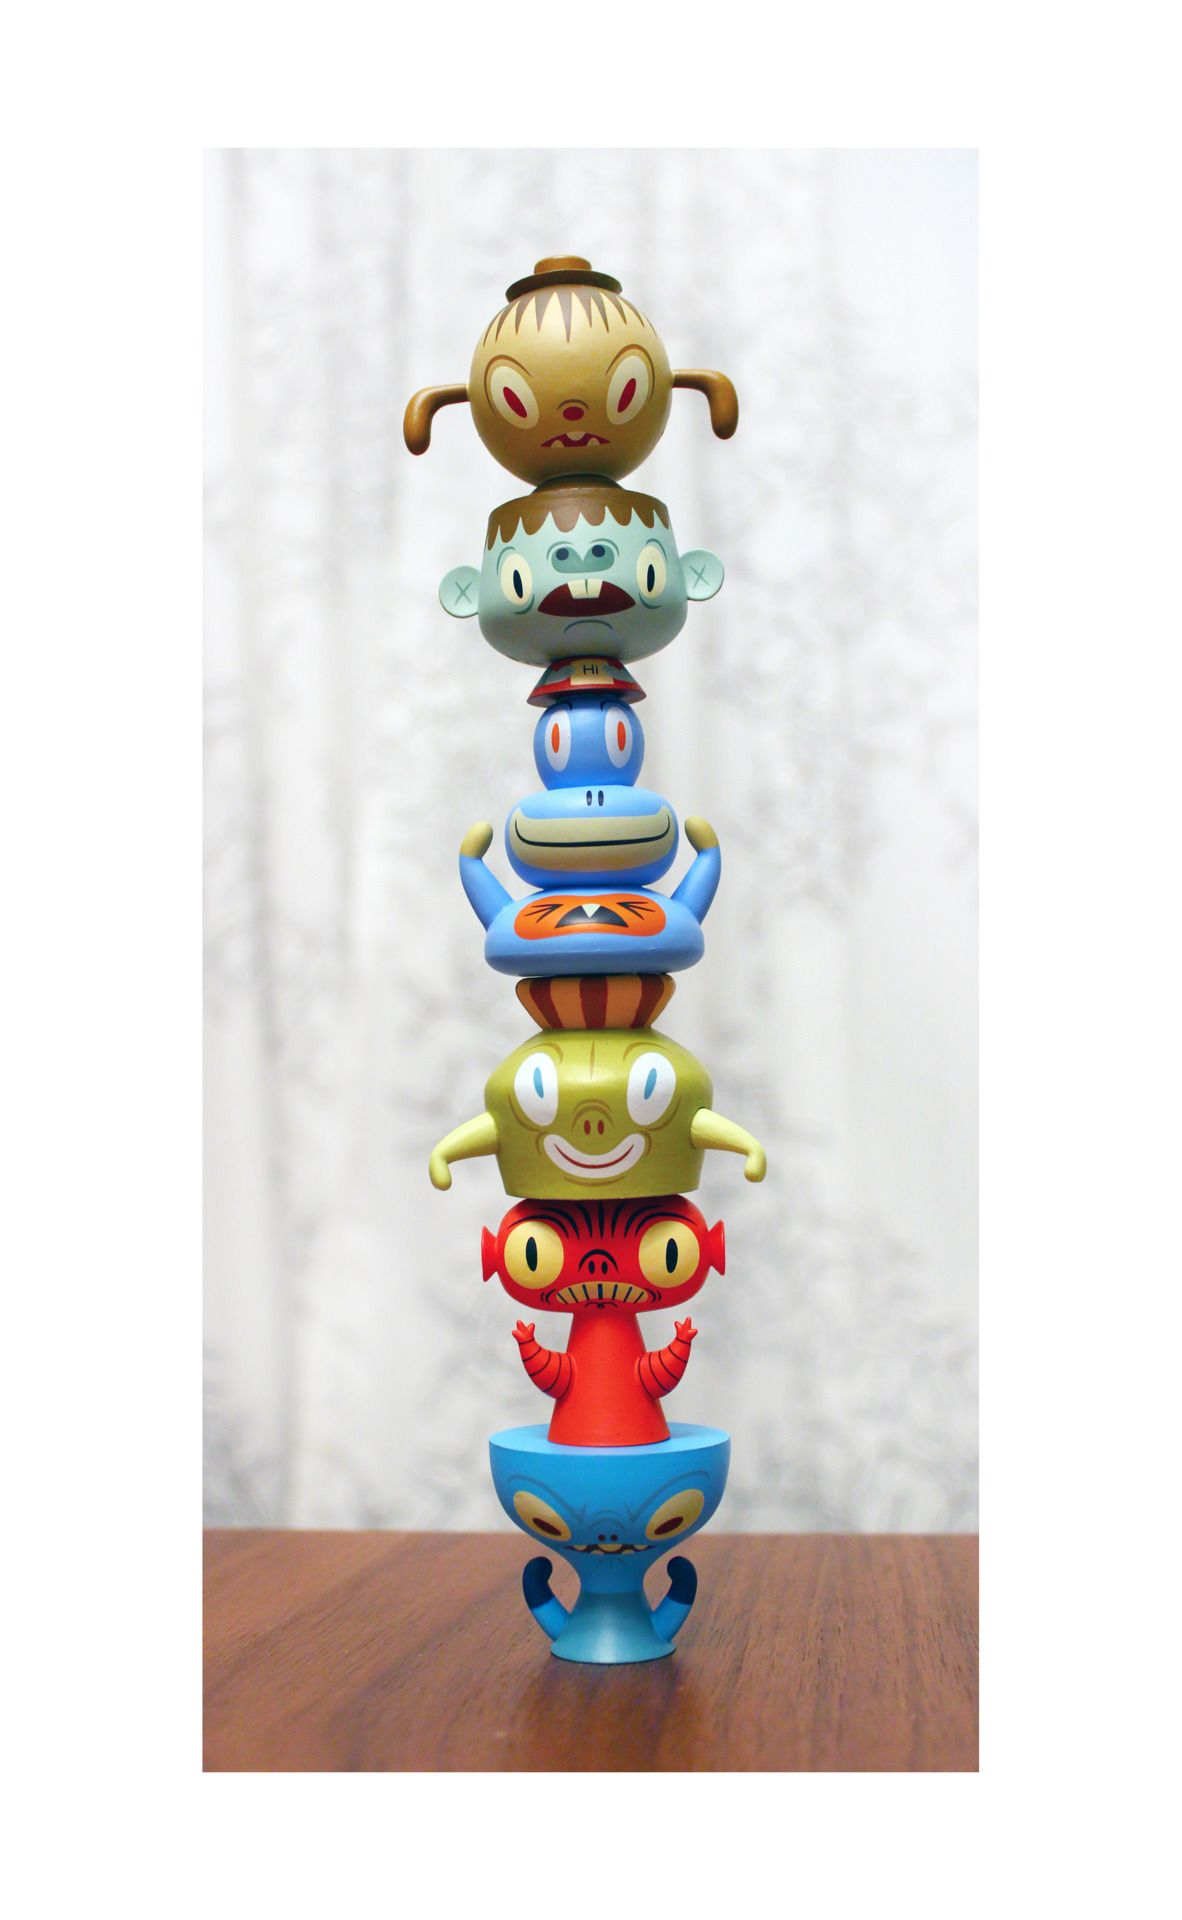 Baby toys images cartoon  Stack Pack figure by Tim Biskup  Tim oubrien